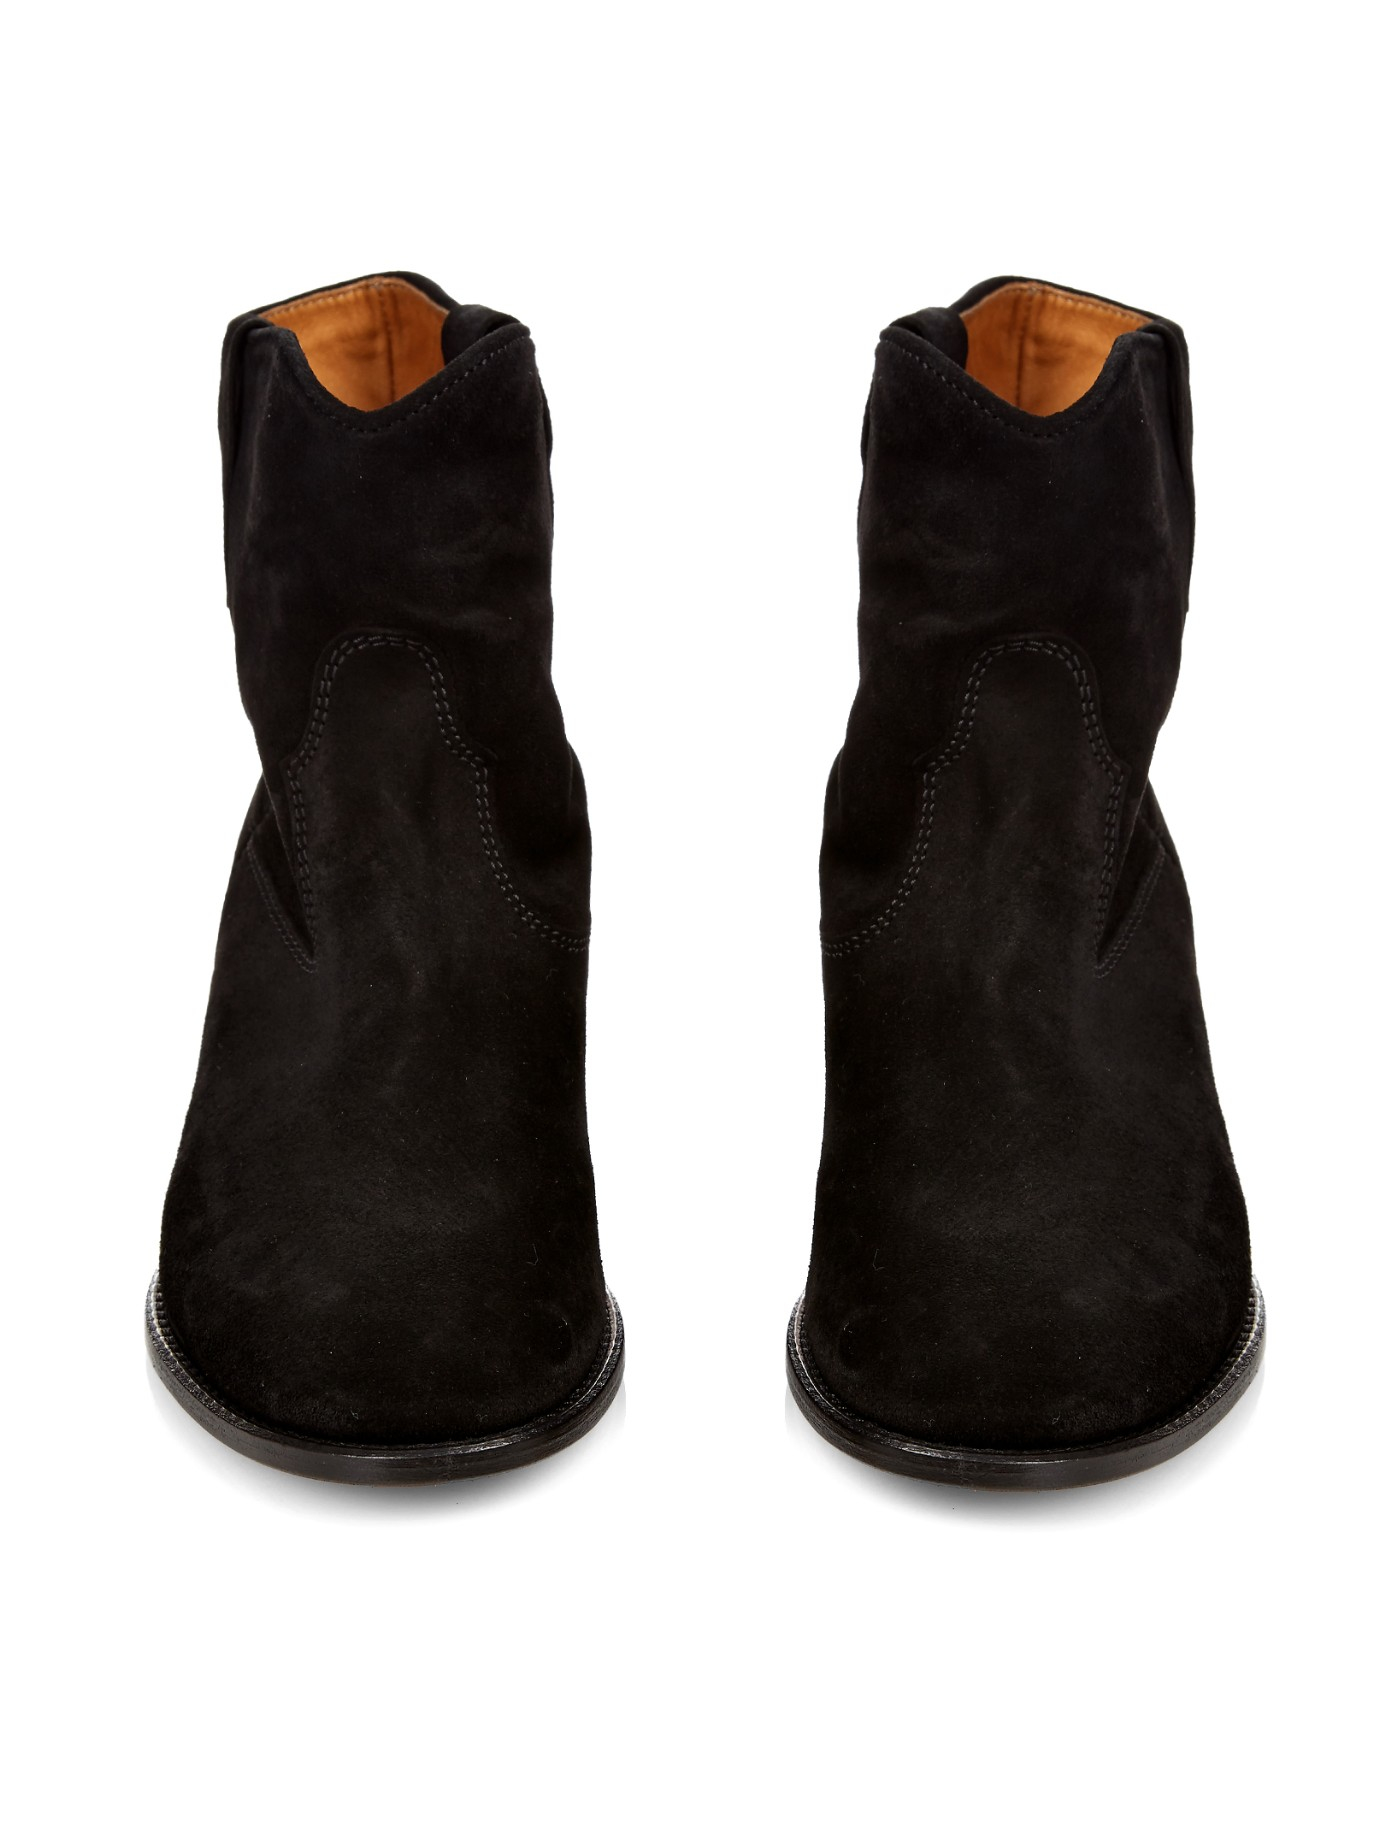 isabel marant crisi suede ankle boots in black lyst. Black Bedroom Furniture Sets. Home Design Ideas